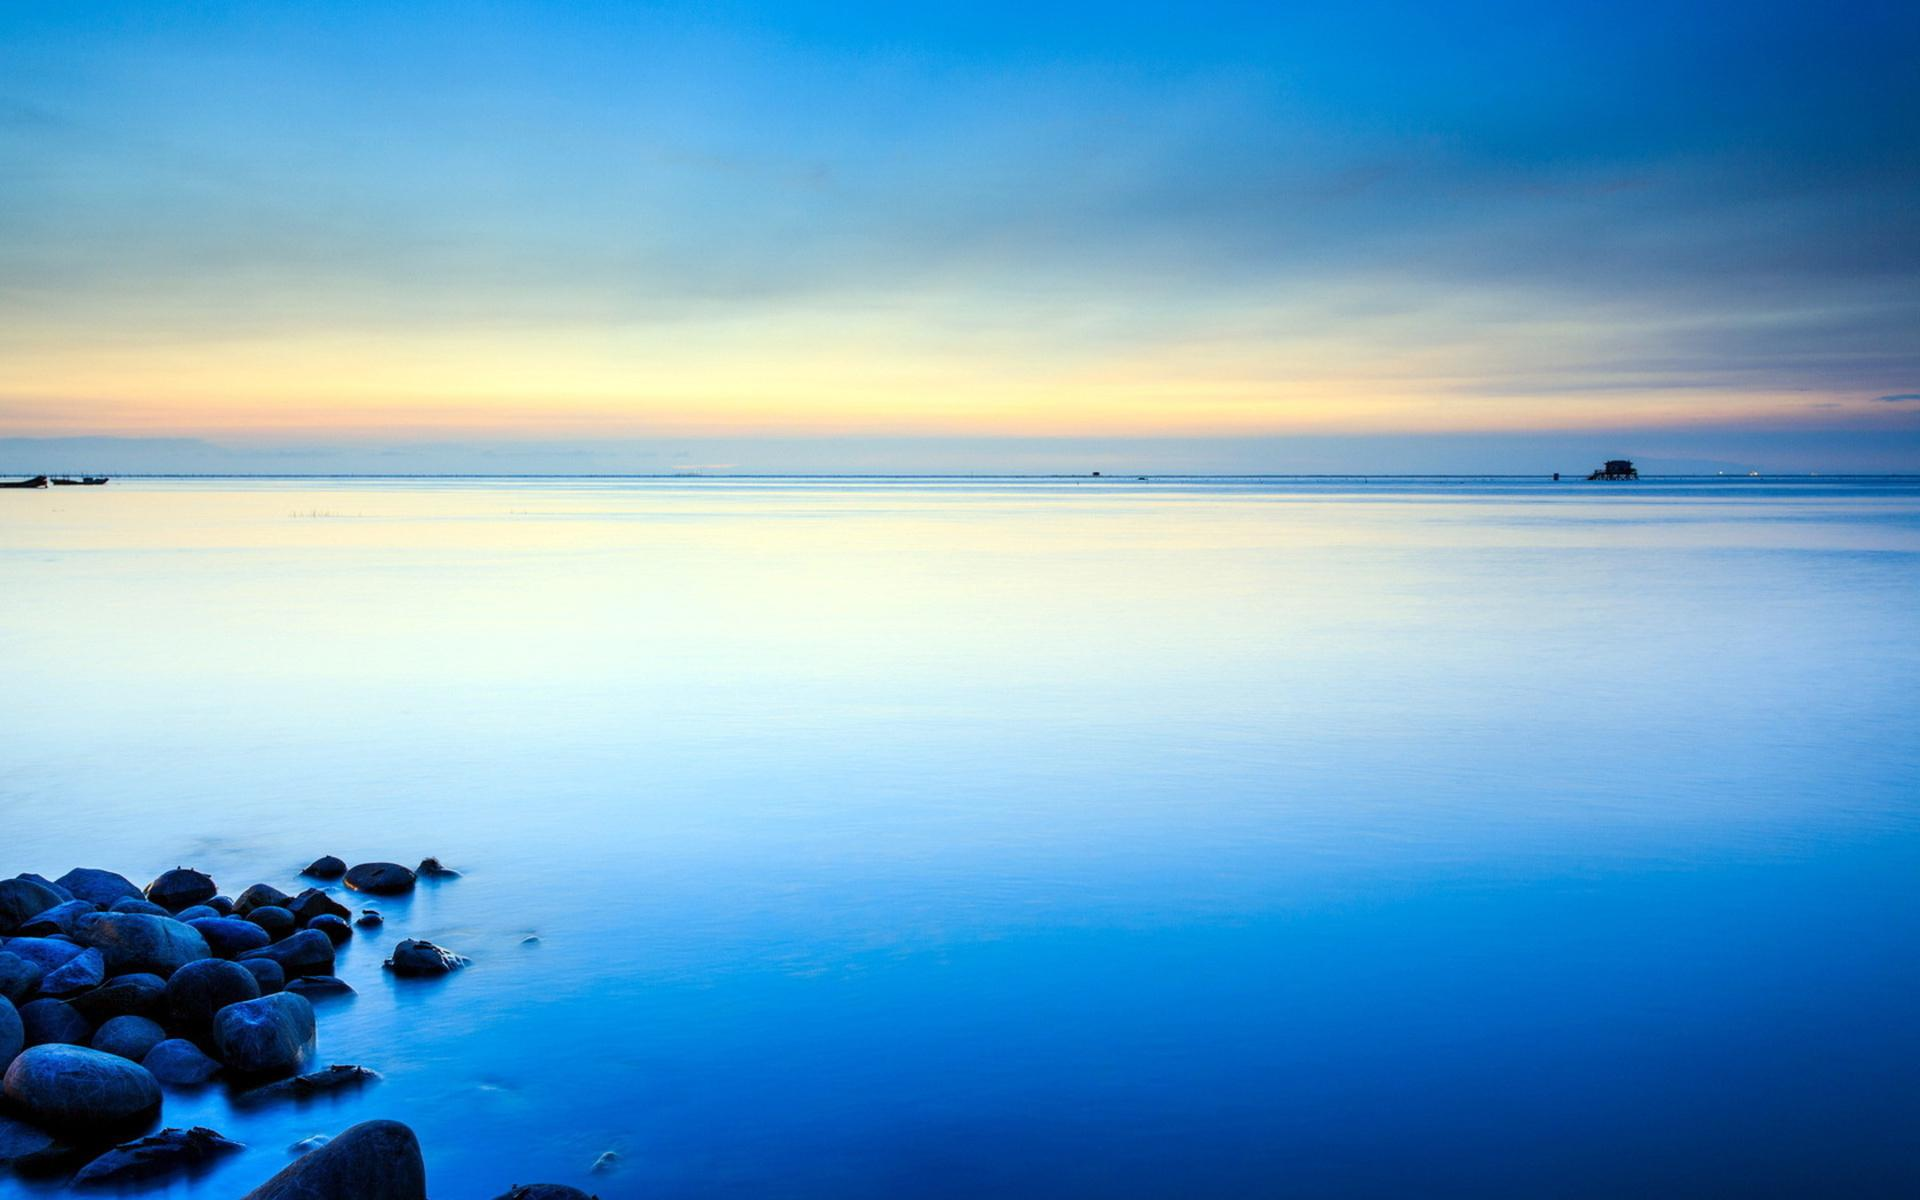 Wallpapers for Lovely Seascape Resolution 1920x1200px 1920x1200